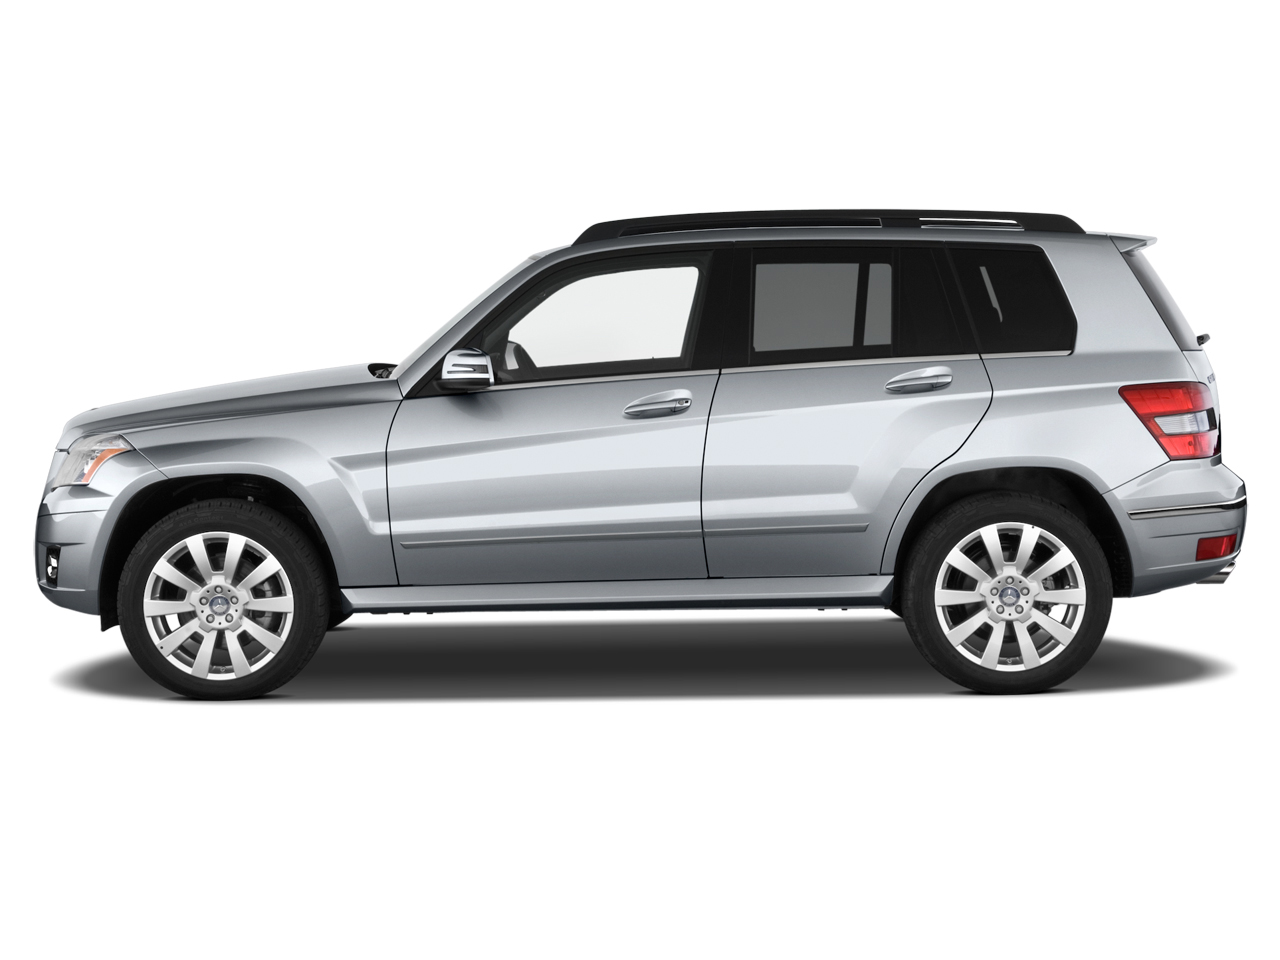 2012 mercedes benz glk class gas mileage the car connection for Mercedes benz glk350 suv 2012